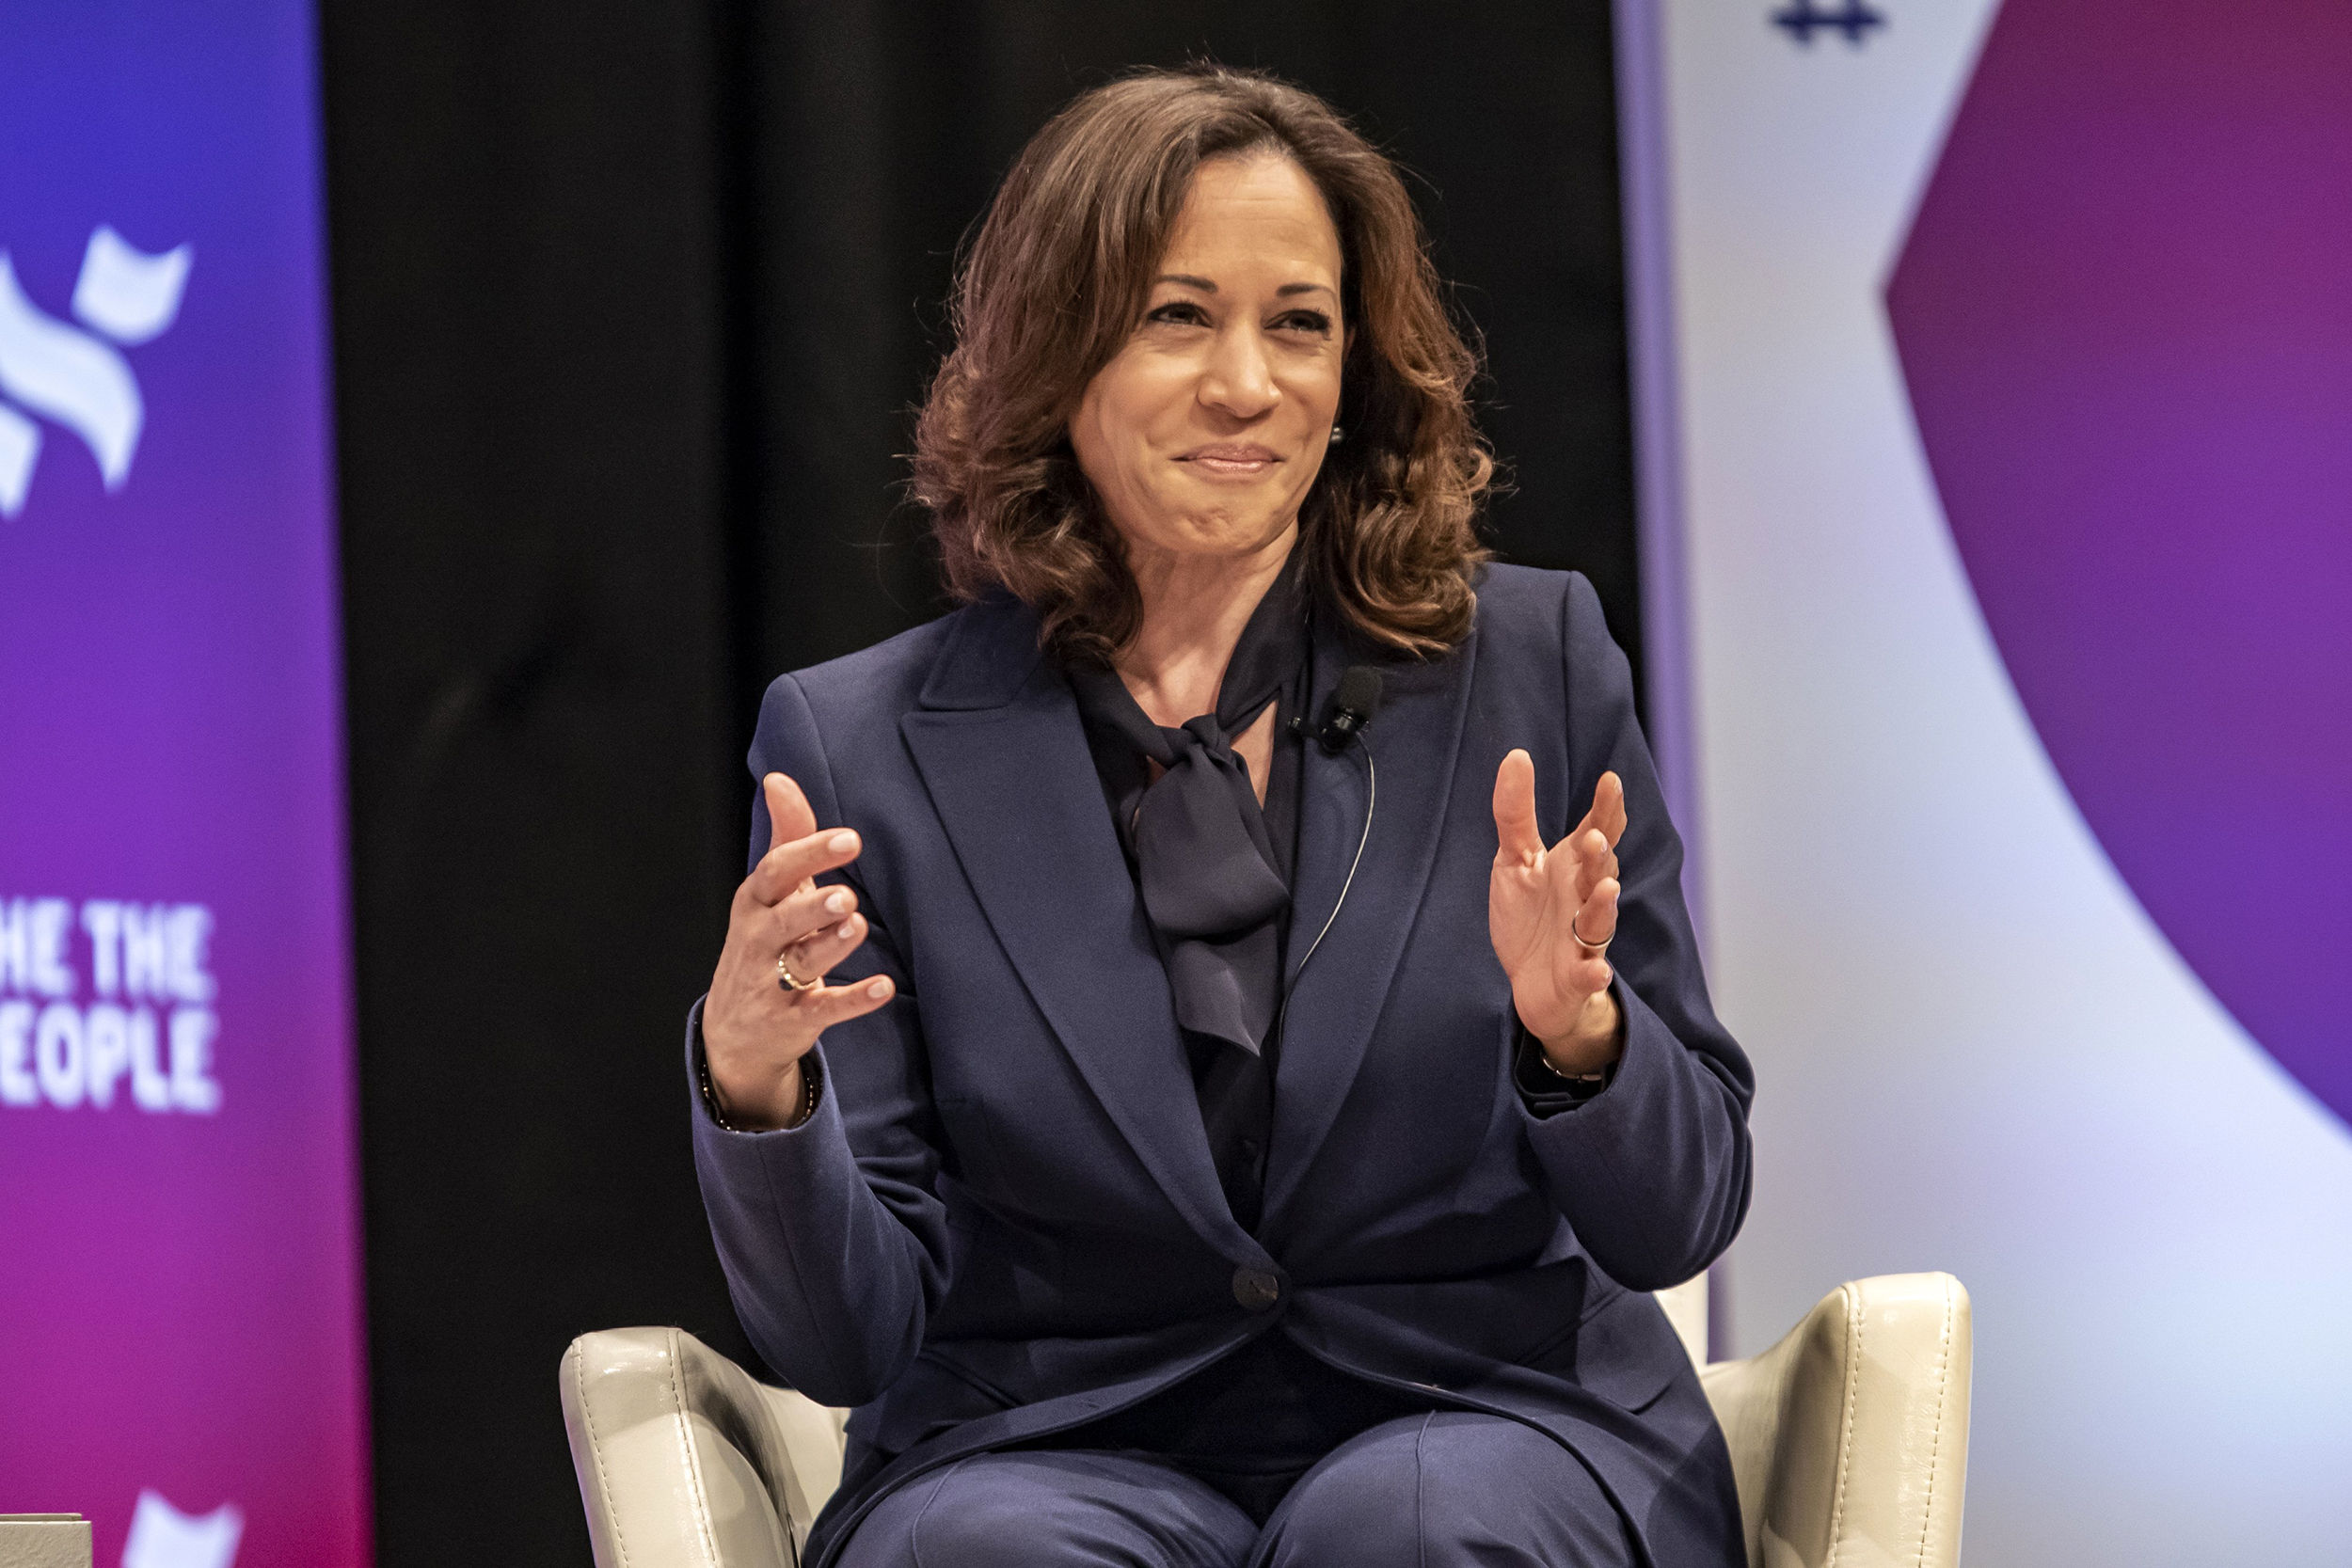 David Mark Kamala Harris The 2020 Democratic Vp Pick Is Attacked For Flip Flops But They Re An Asset